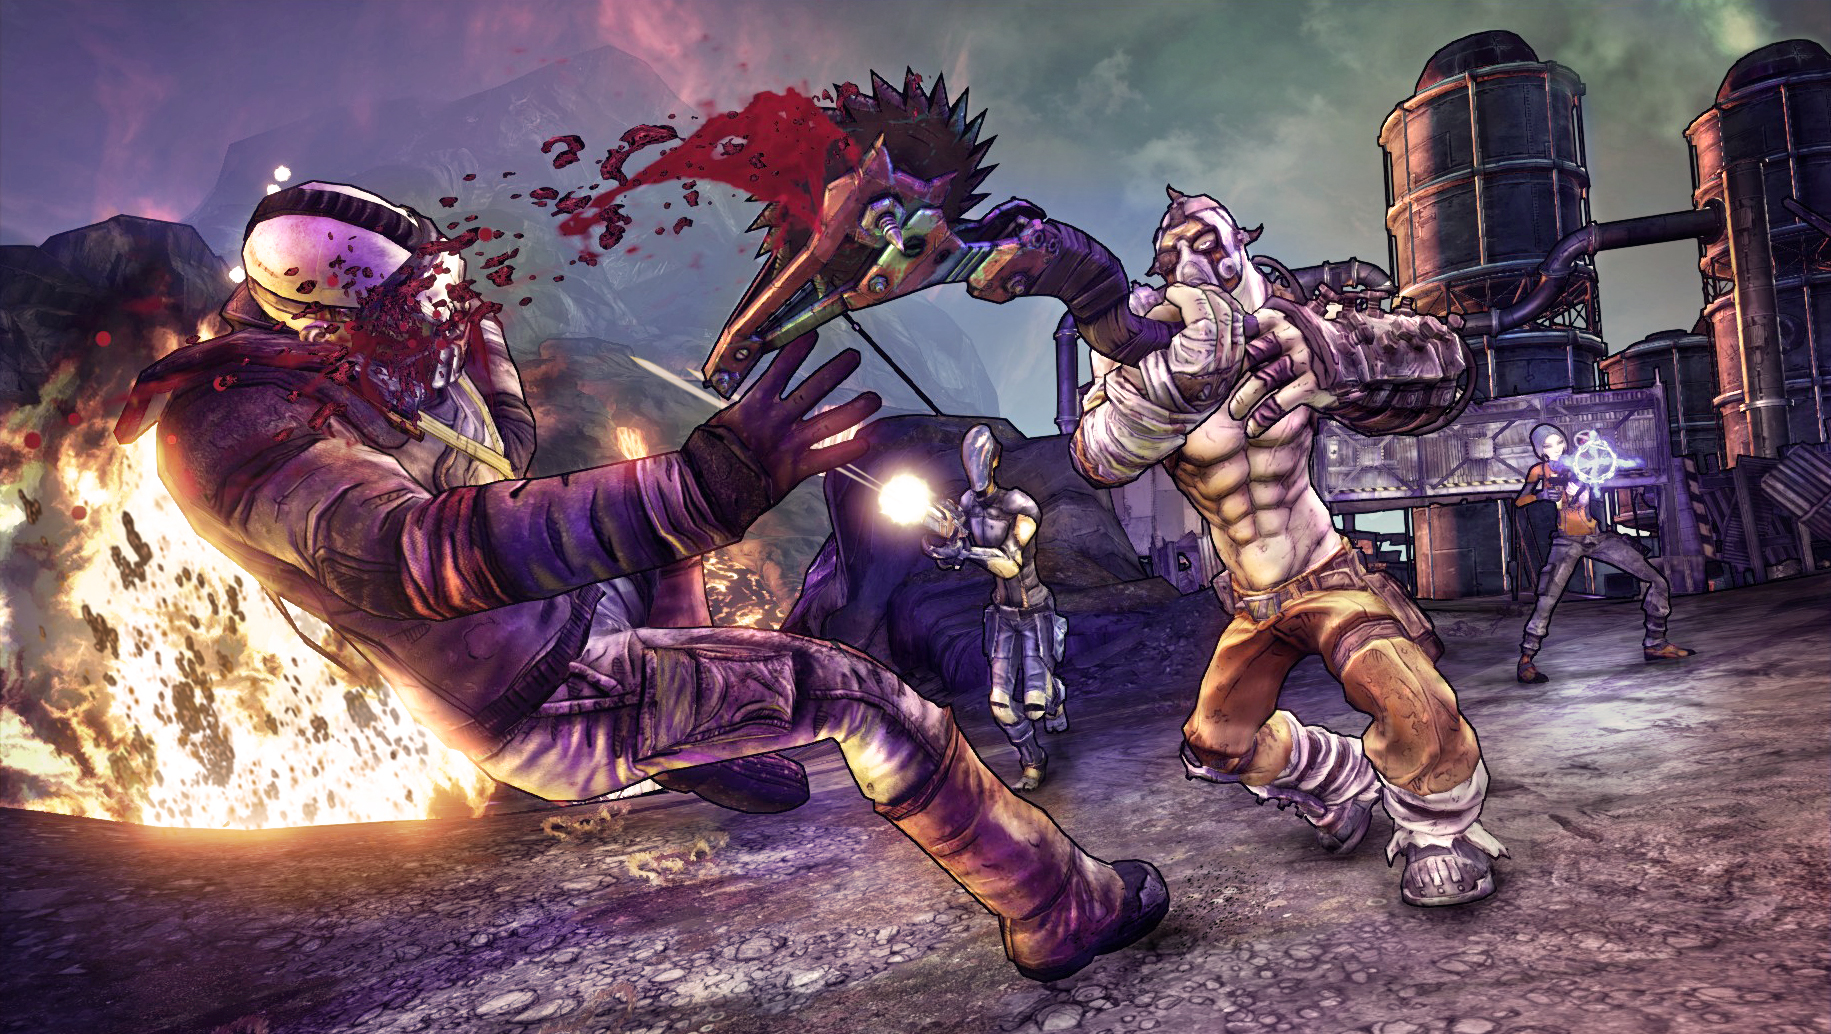 Borderlands Wallpaper High Resolution Styles Wallpapers